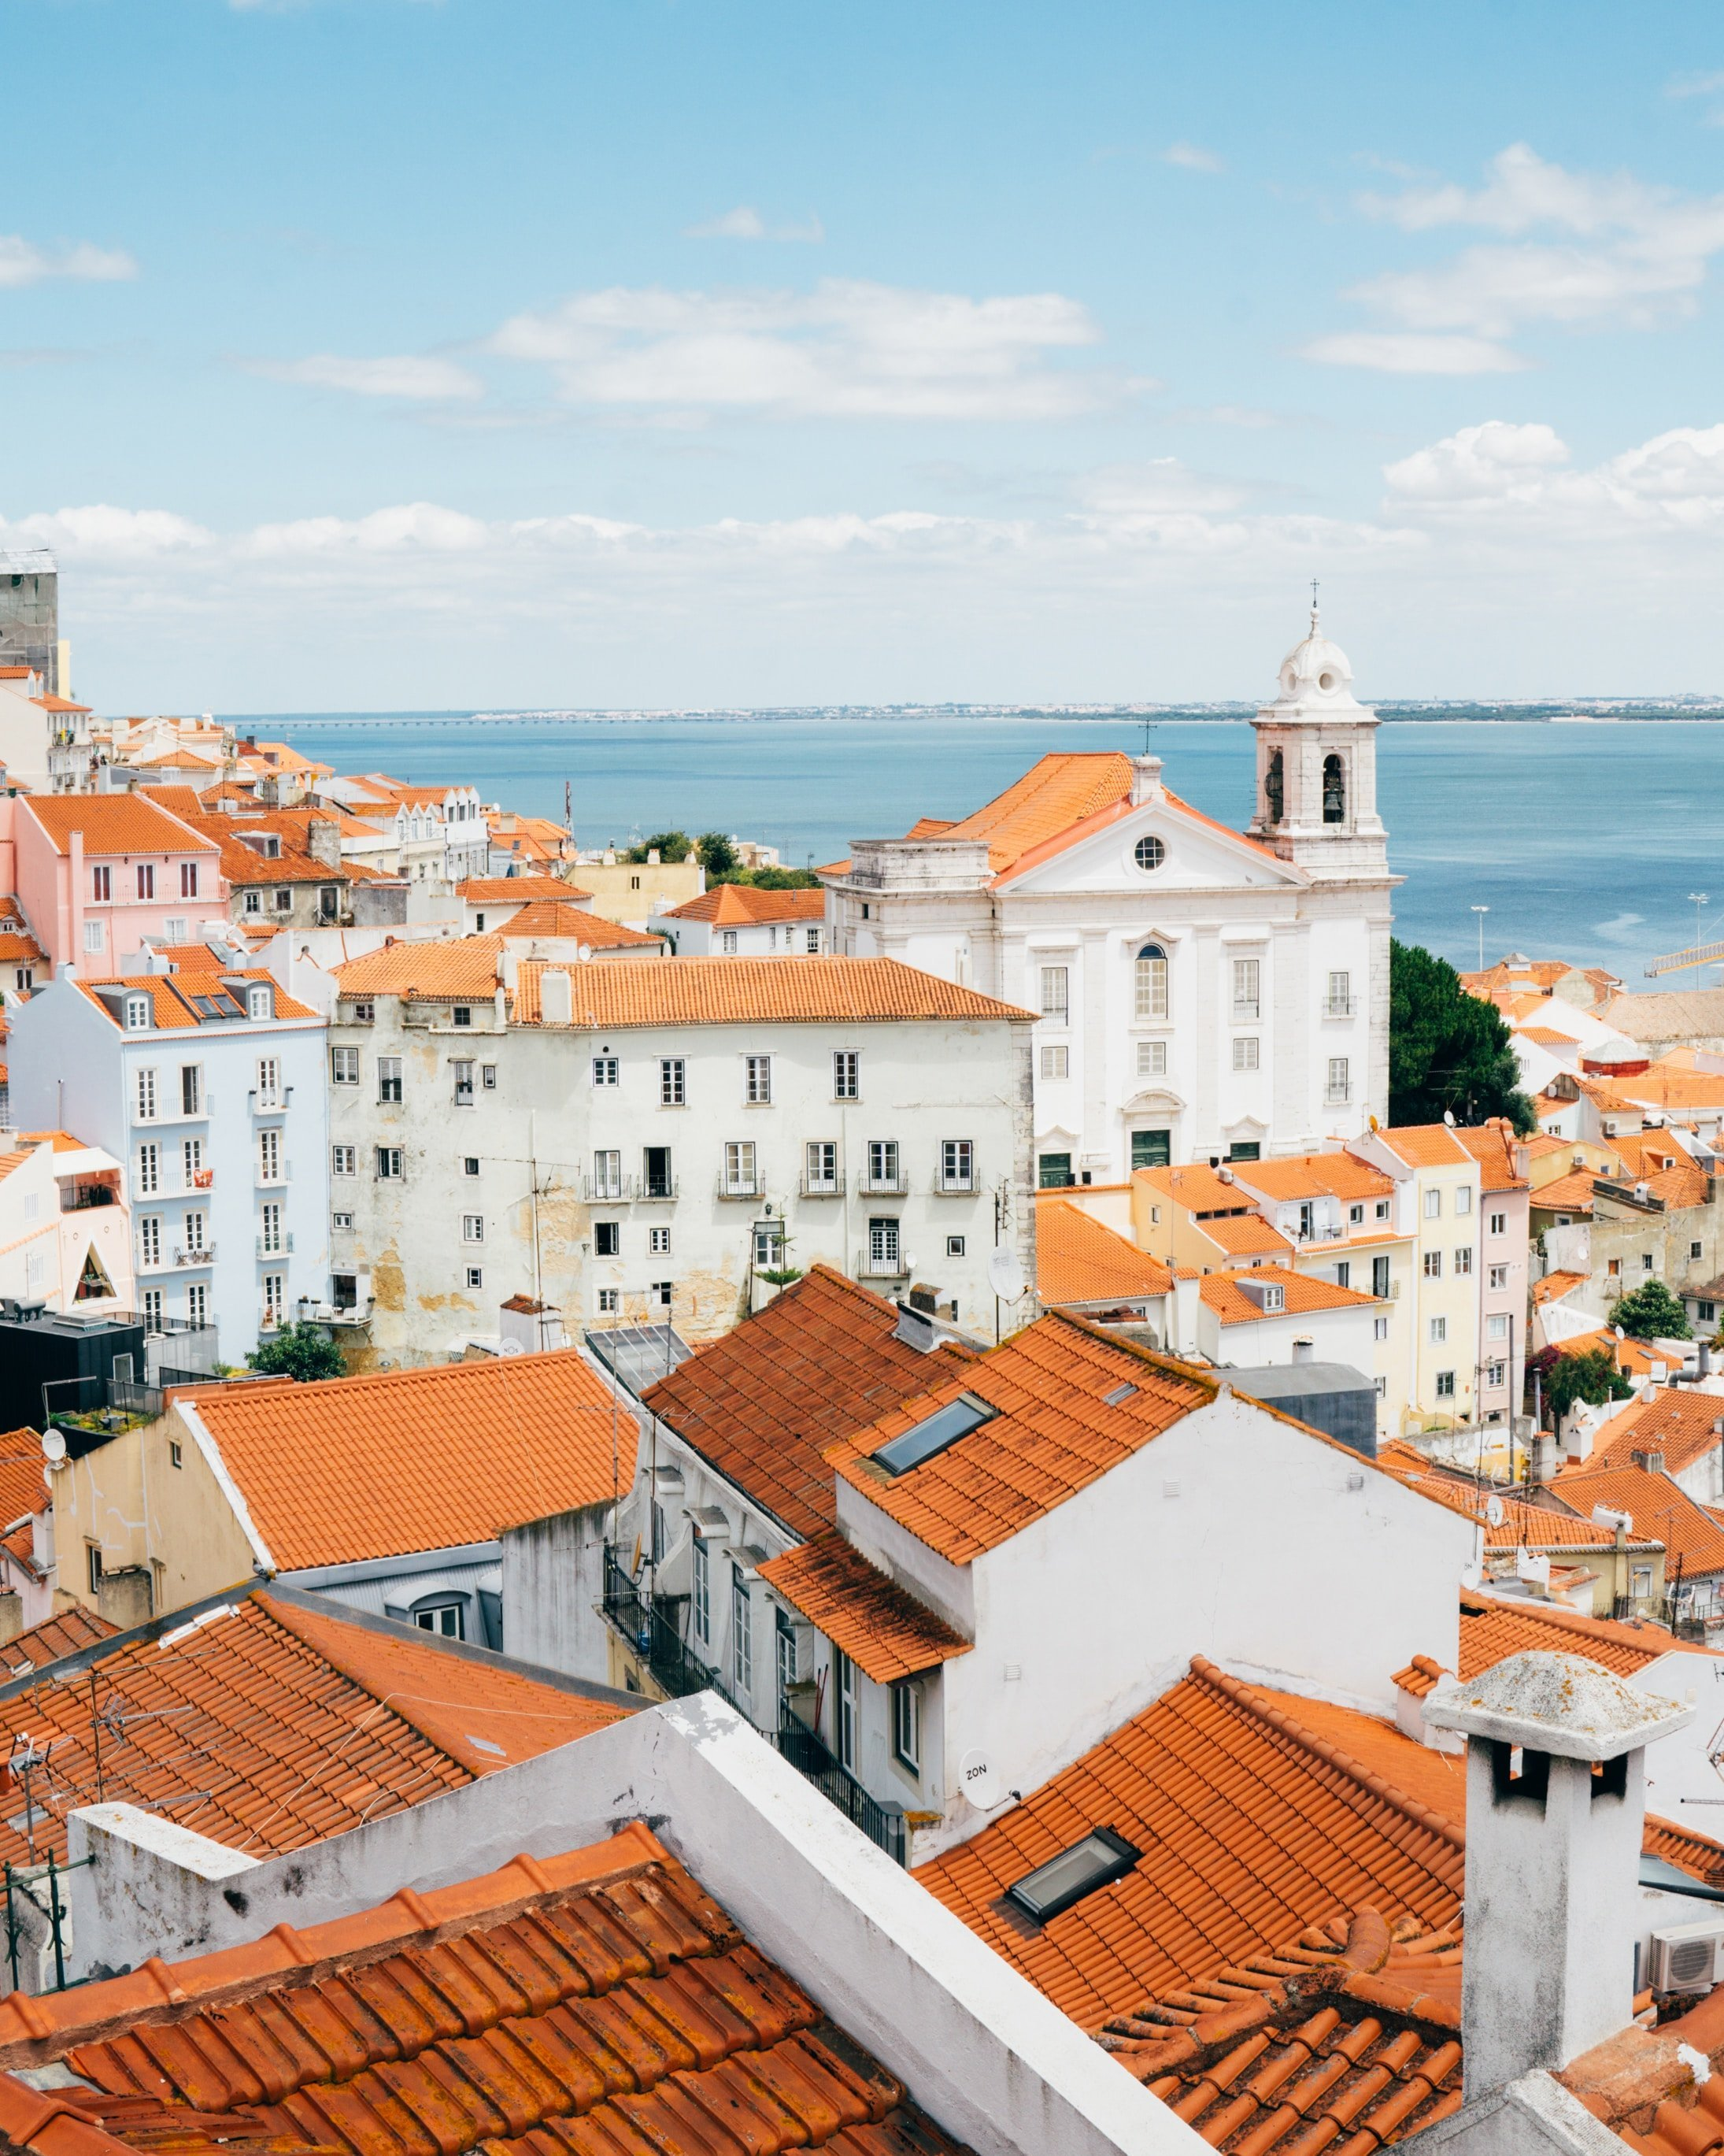 the famous red roofs of Lisbon, Portugal